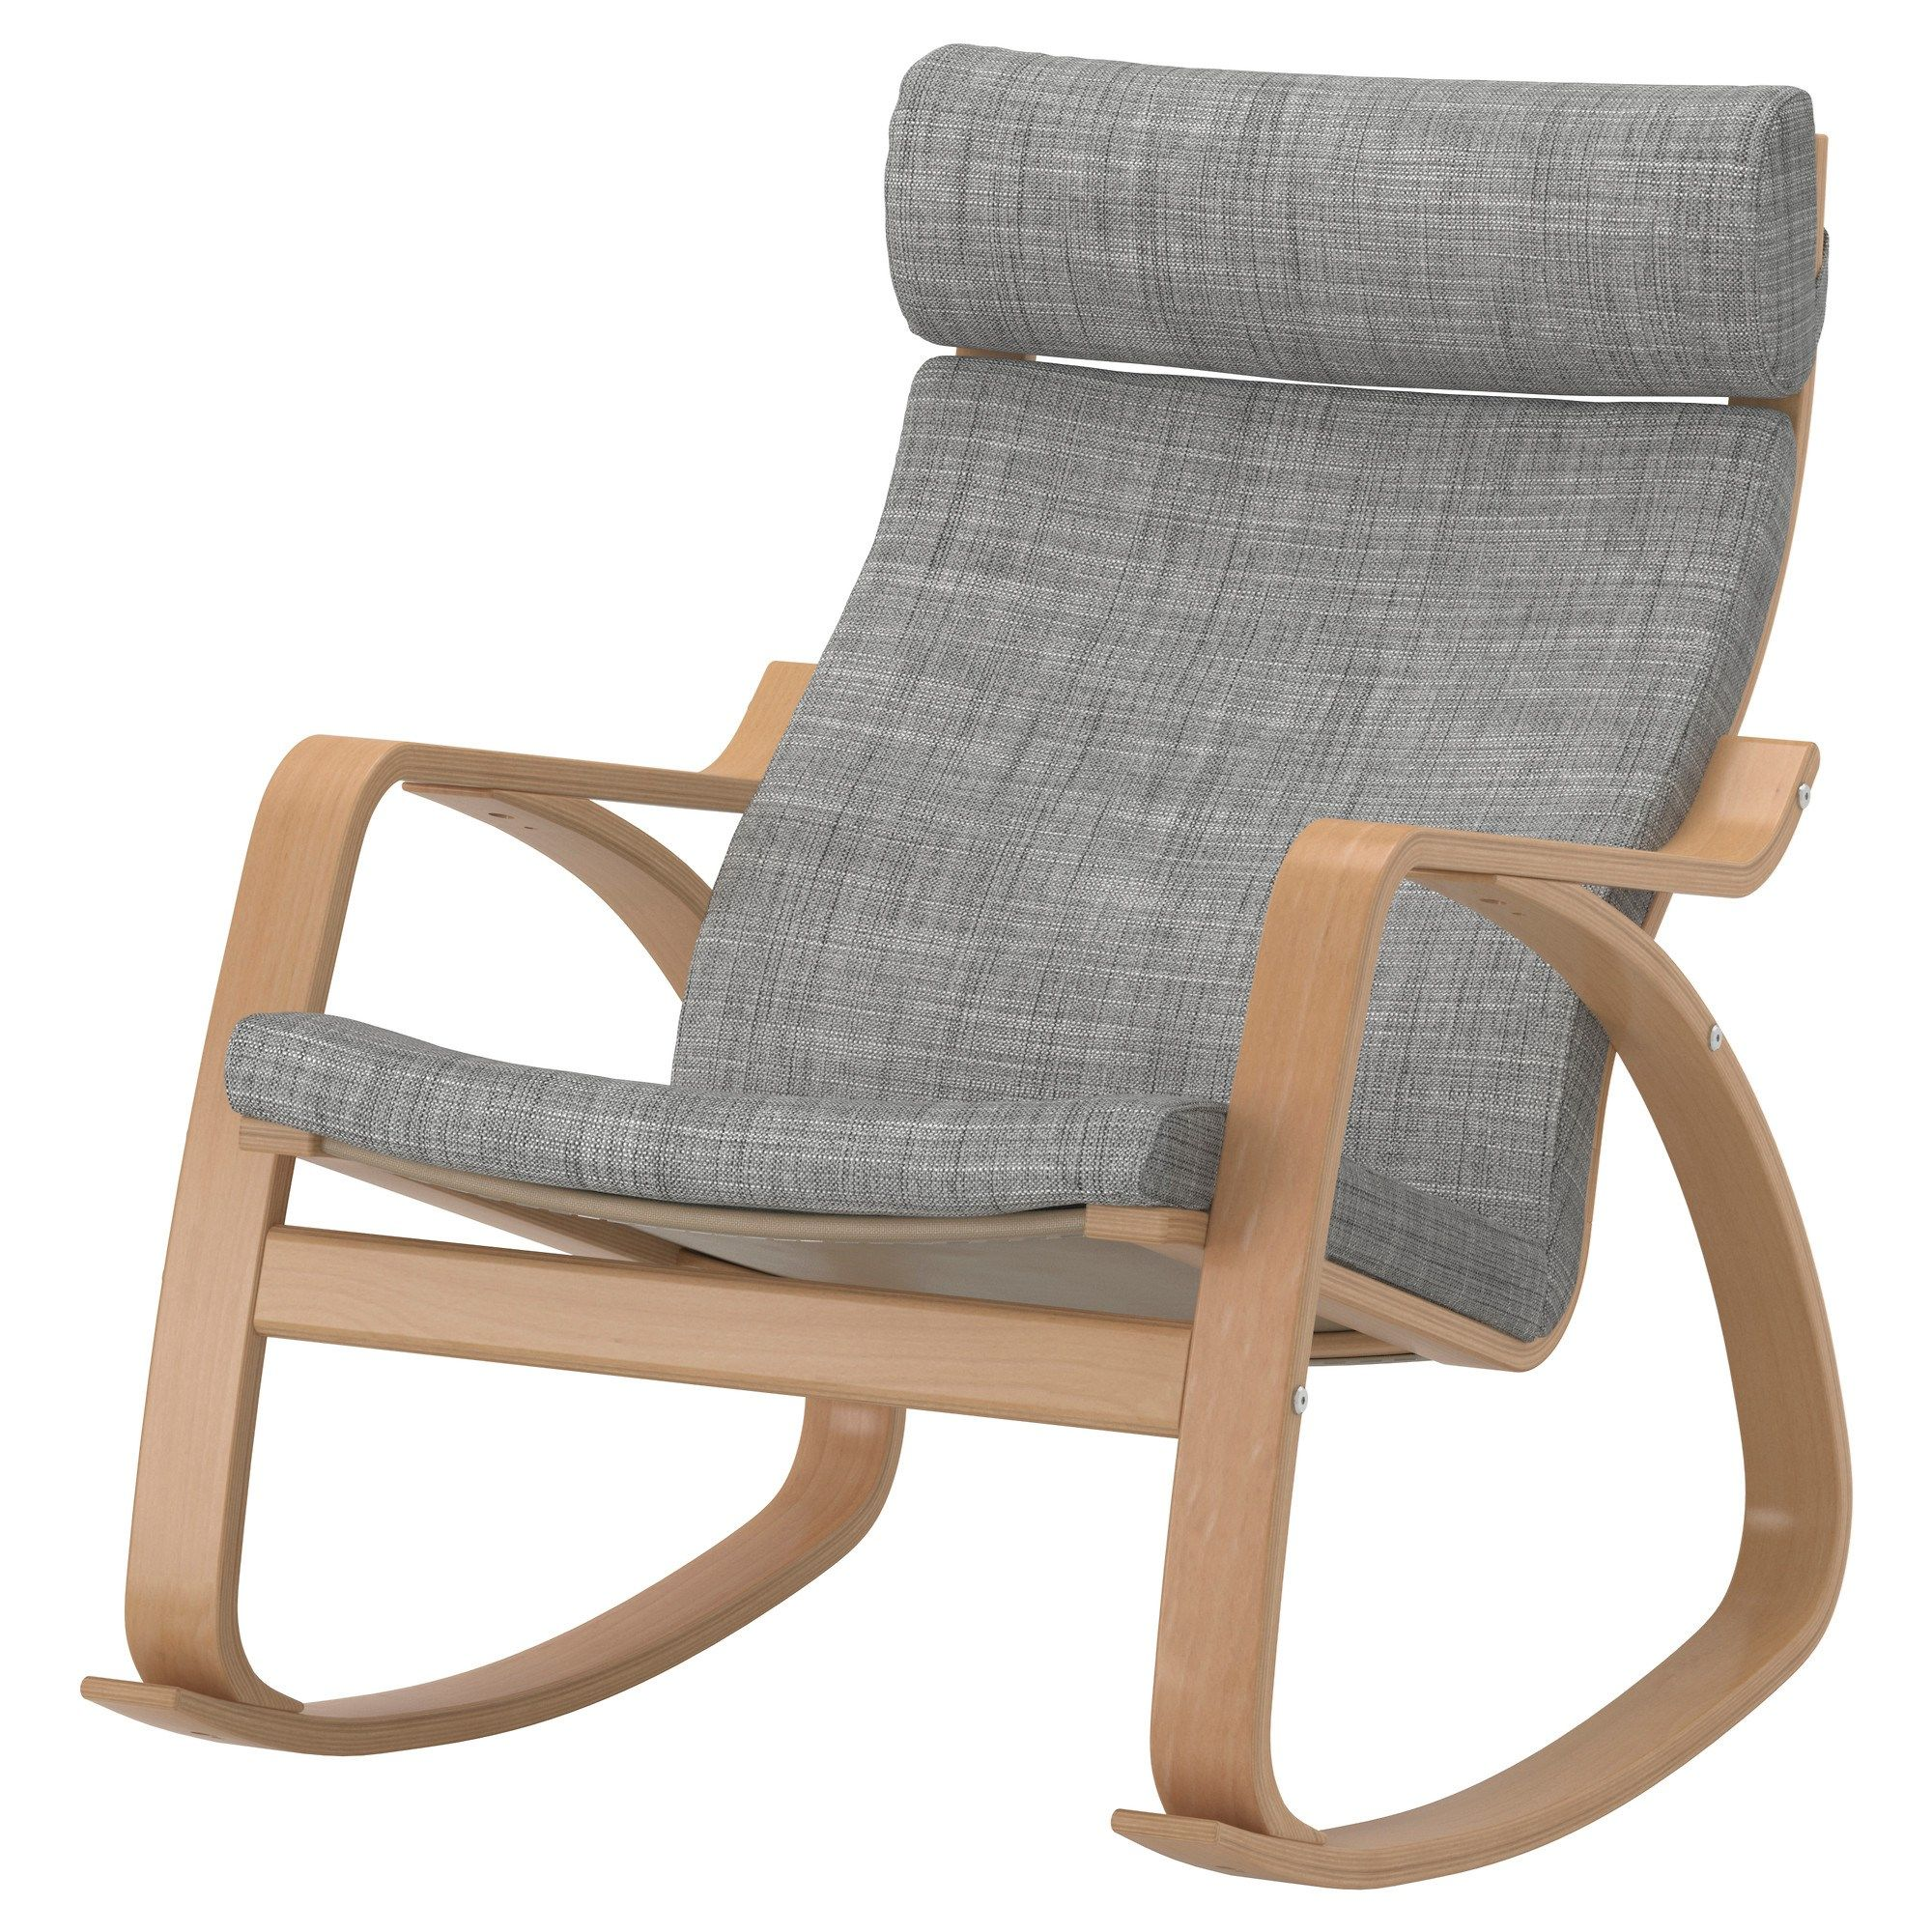 "IKEA PO""NG Rocking chair Isunda beige The frame is made of layer glued bent birch which is a very strong and durable material"